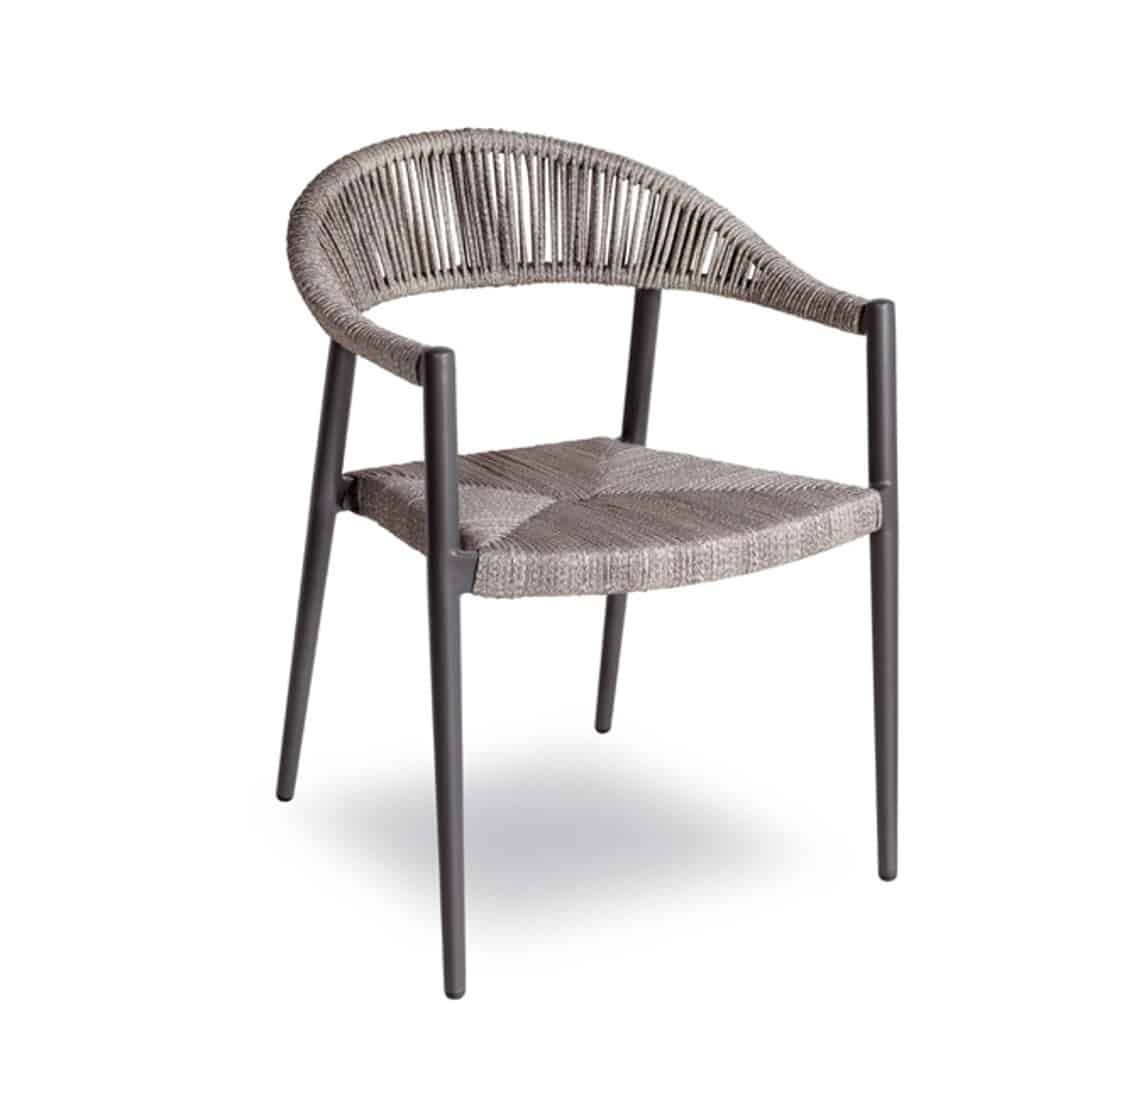 Praque woven outdoor chairs available from DeFrae Contract Furniture